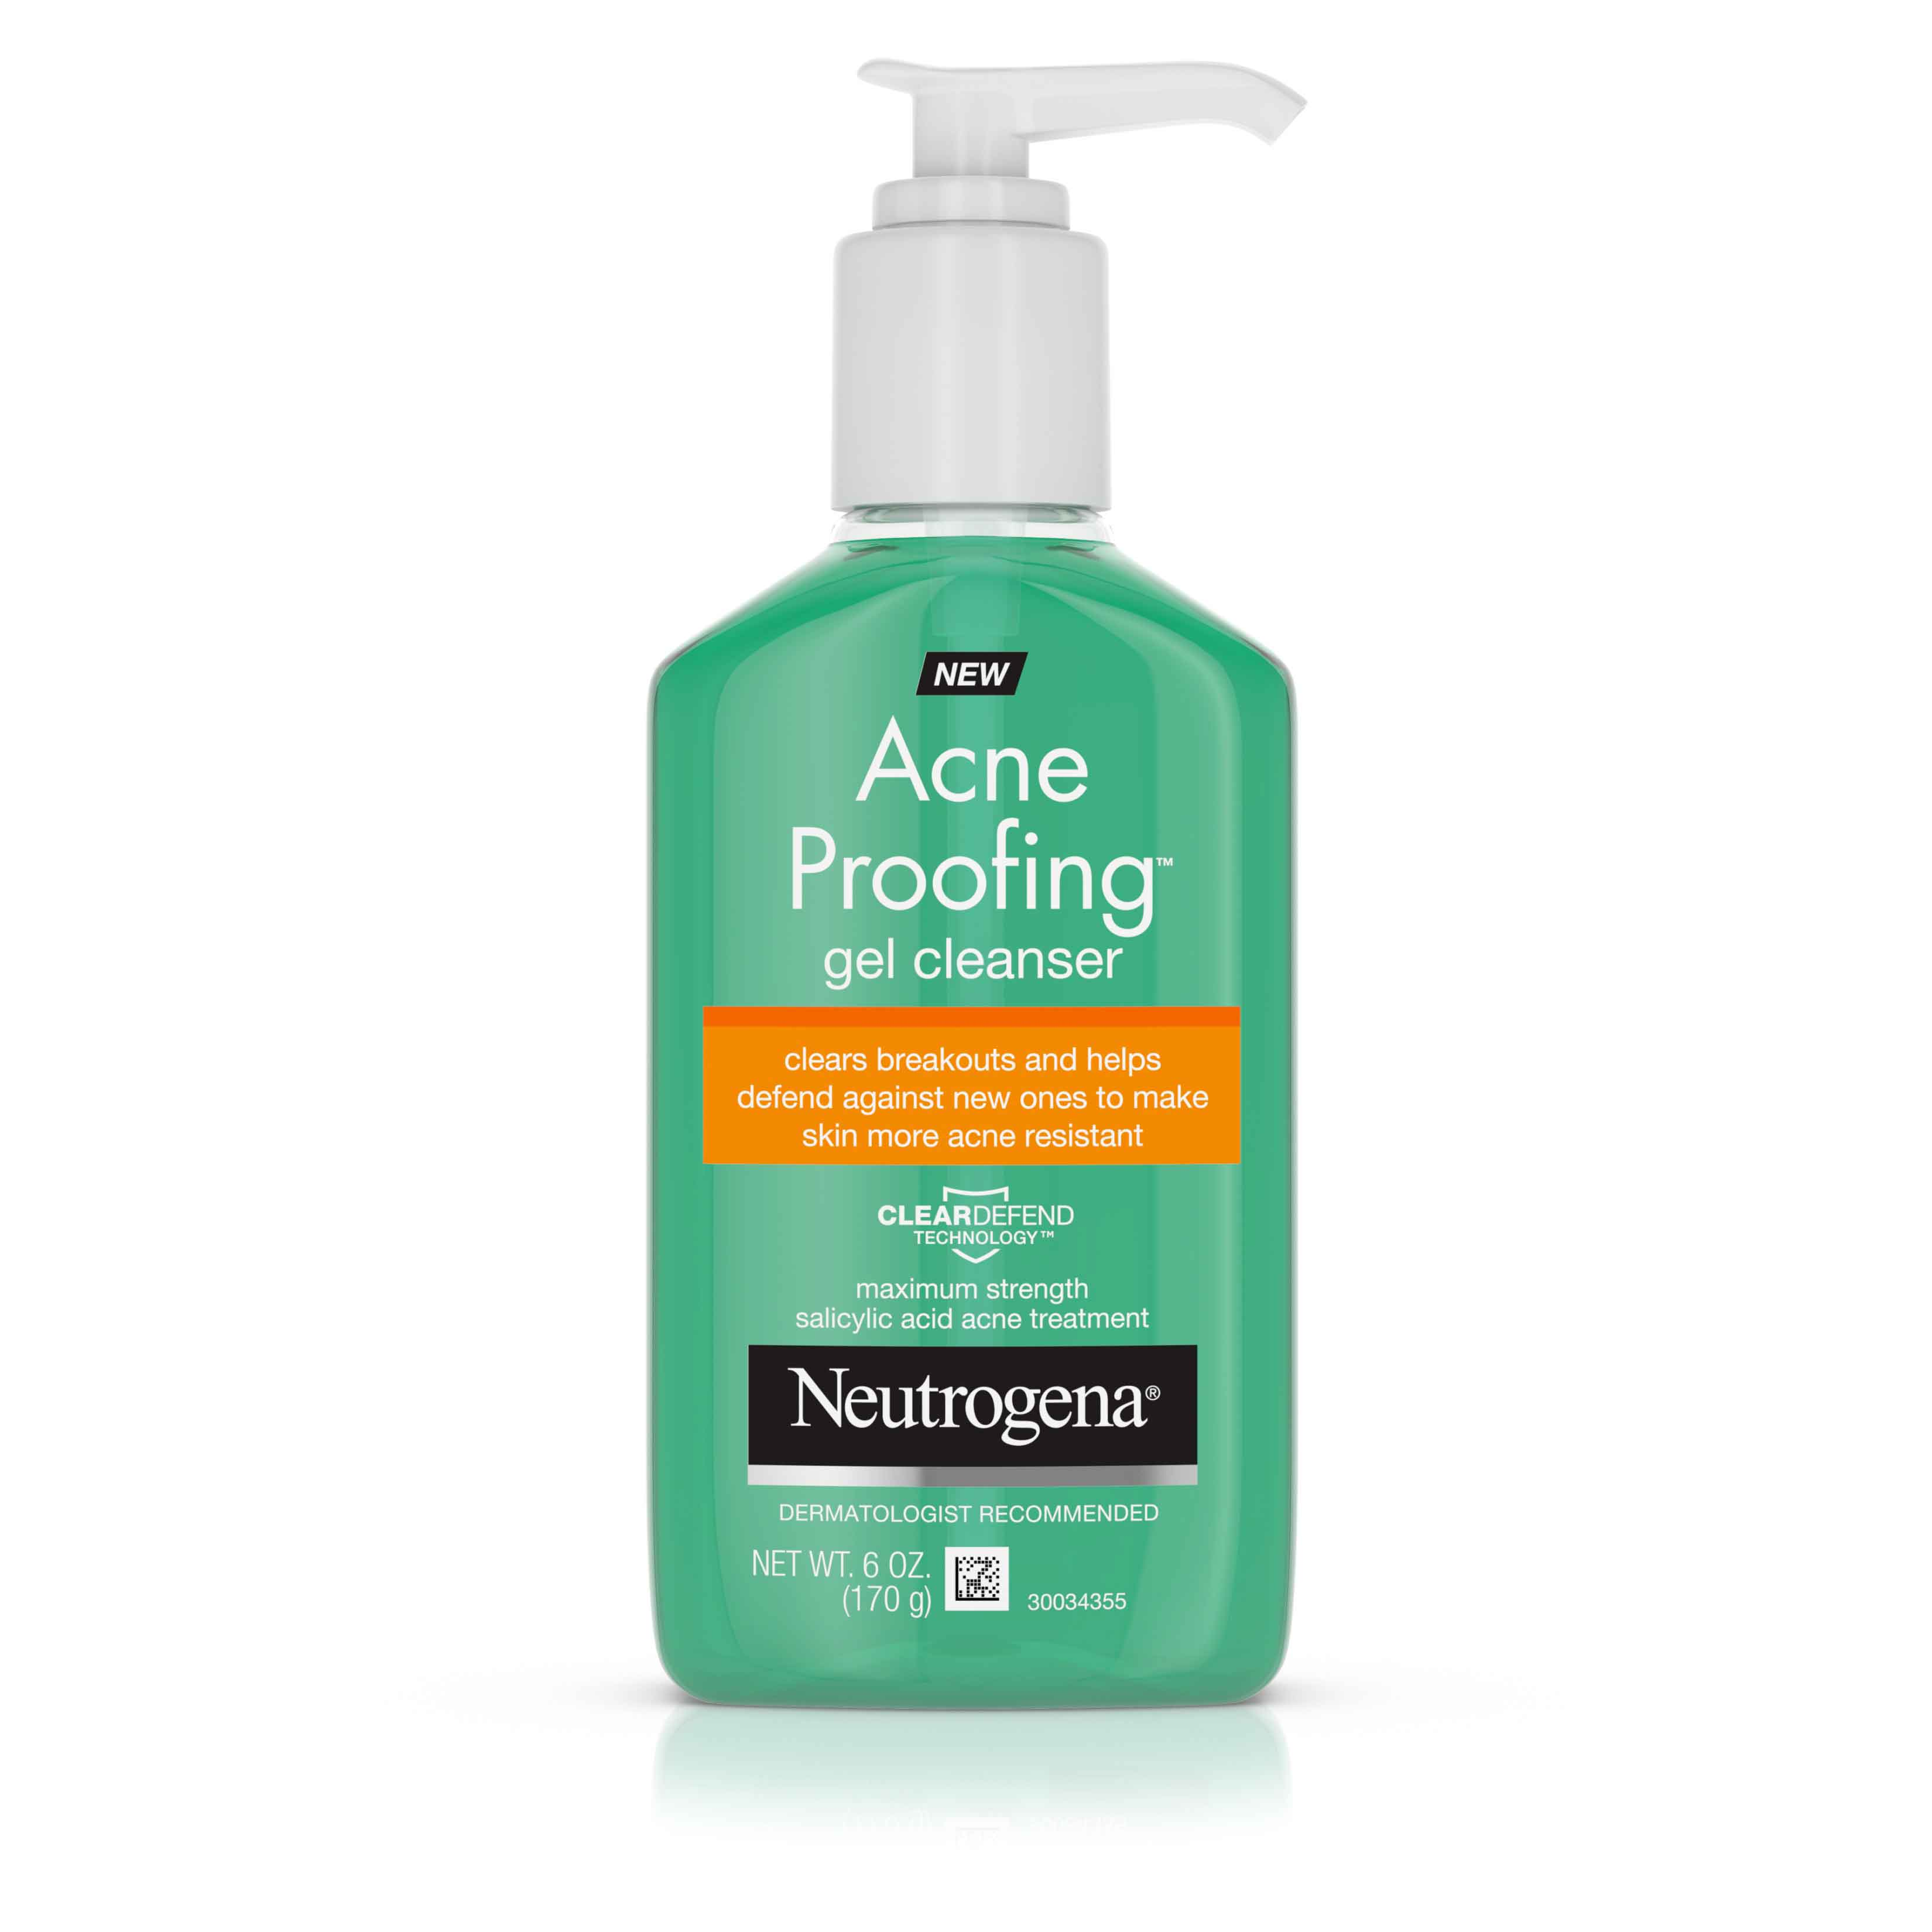 Acne ProofingTM Gel Cleanser